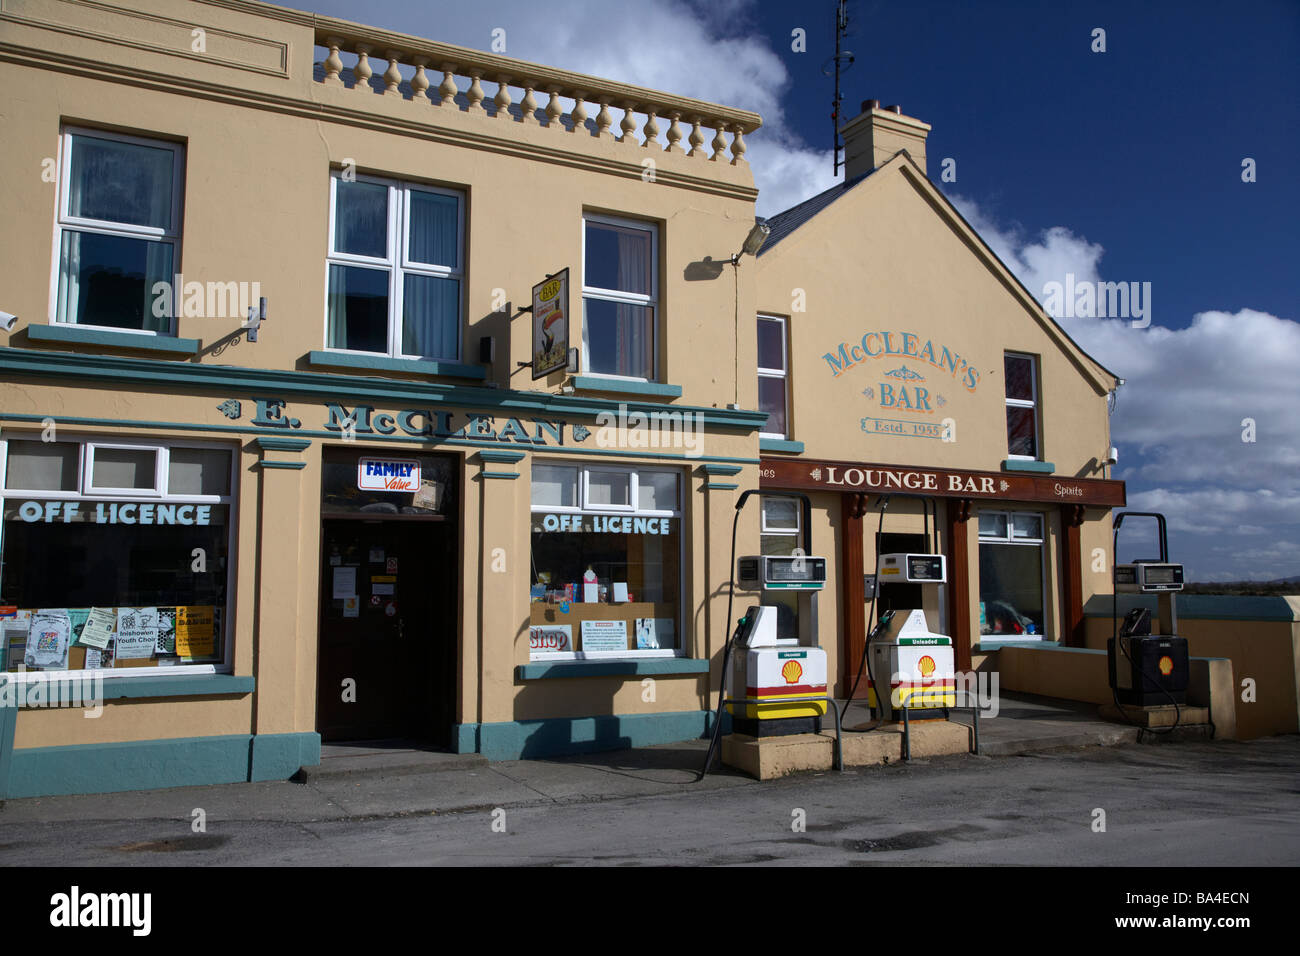 mccleans combined bar shop petrol station in malin inishowen county donegal republic of ireland - Stock Image